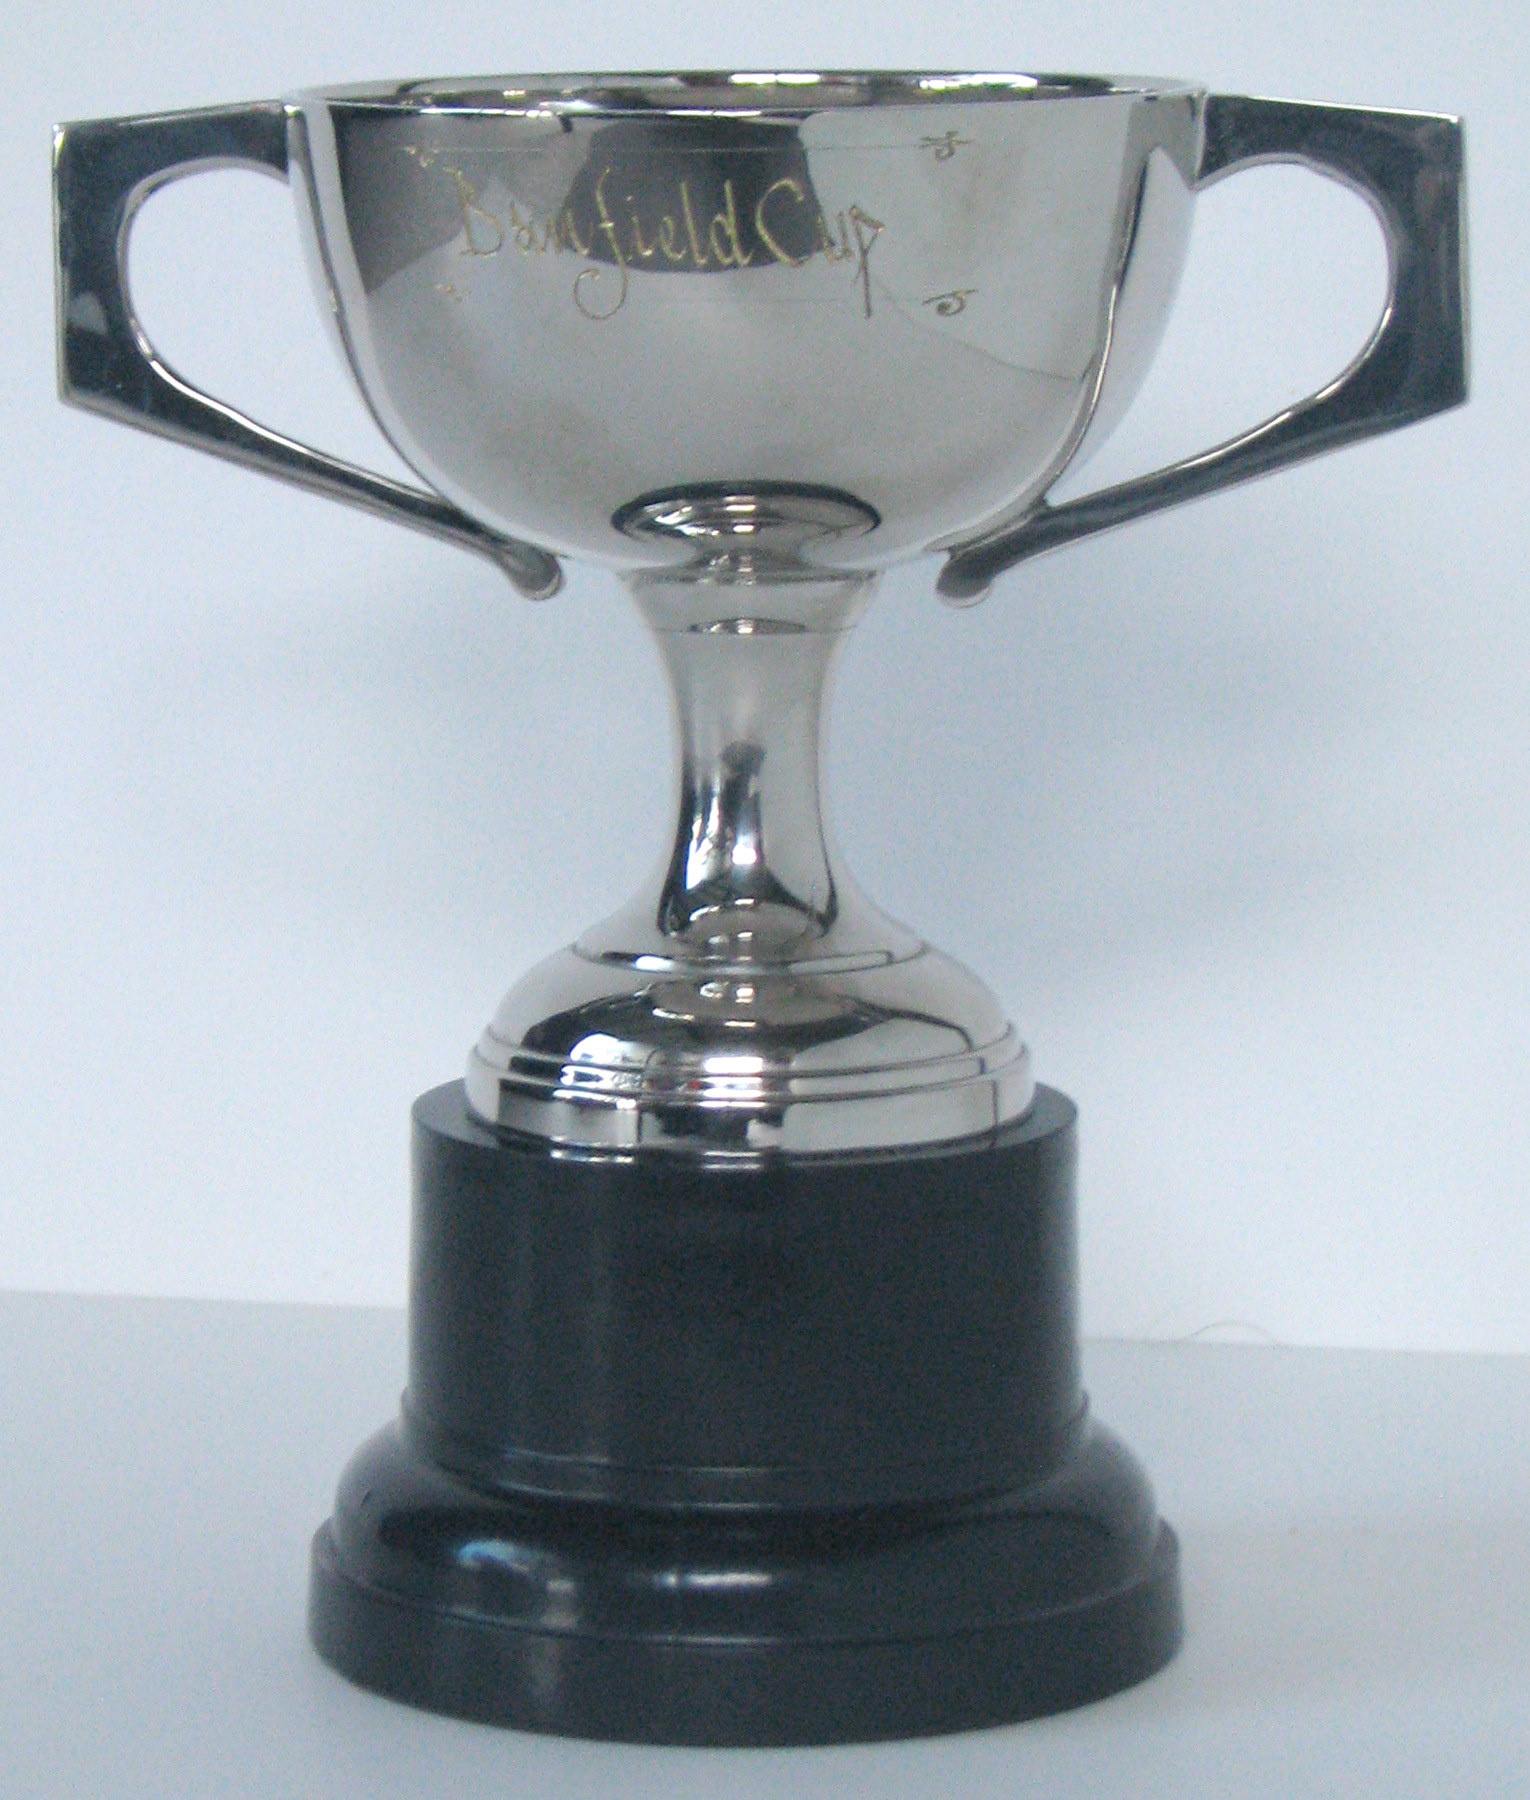 Travelling Banfield Cup